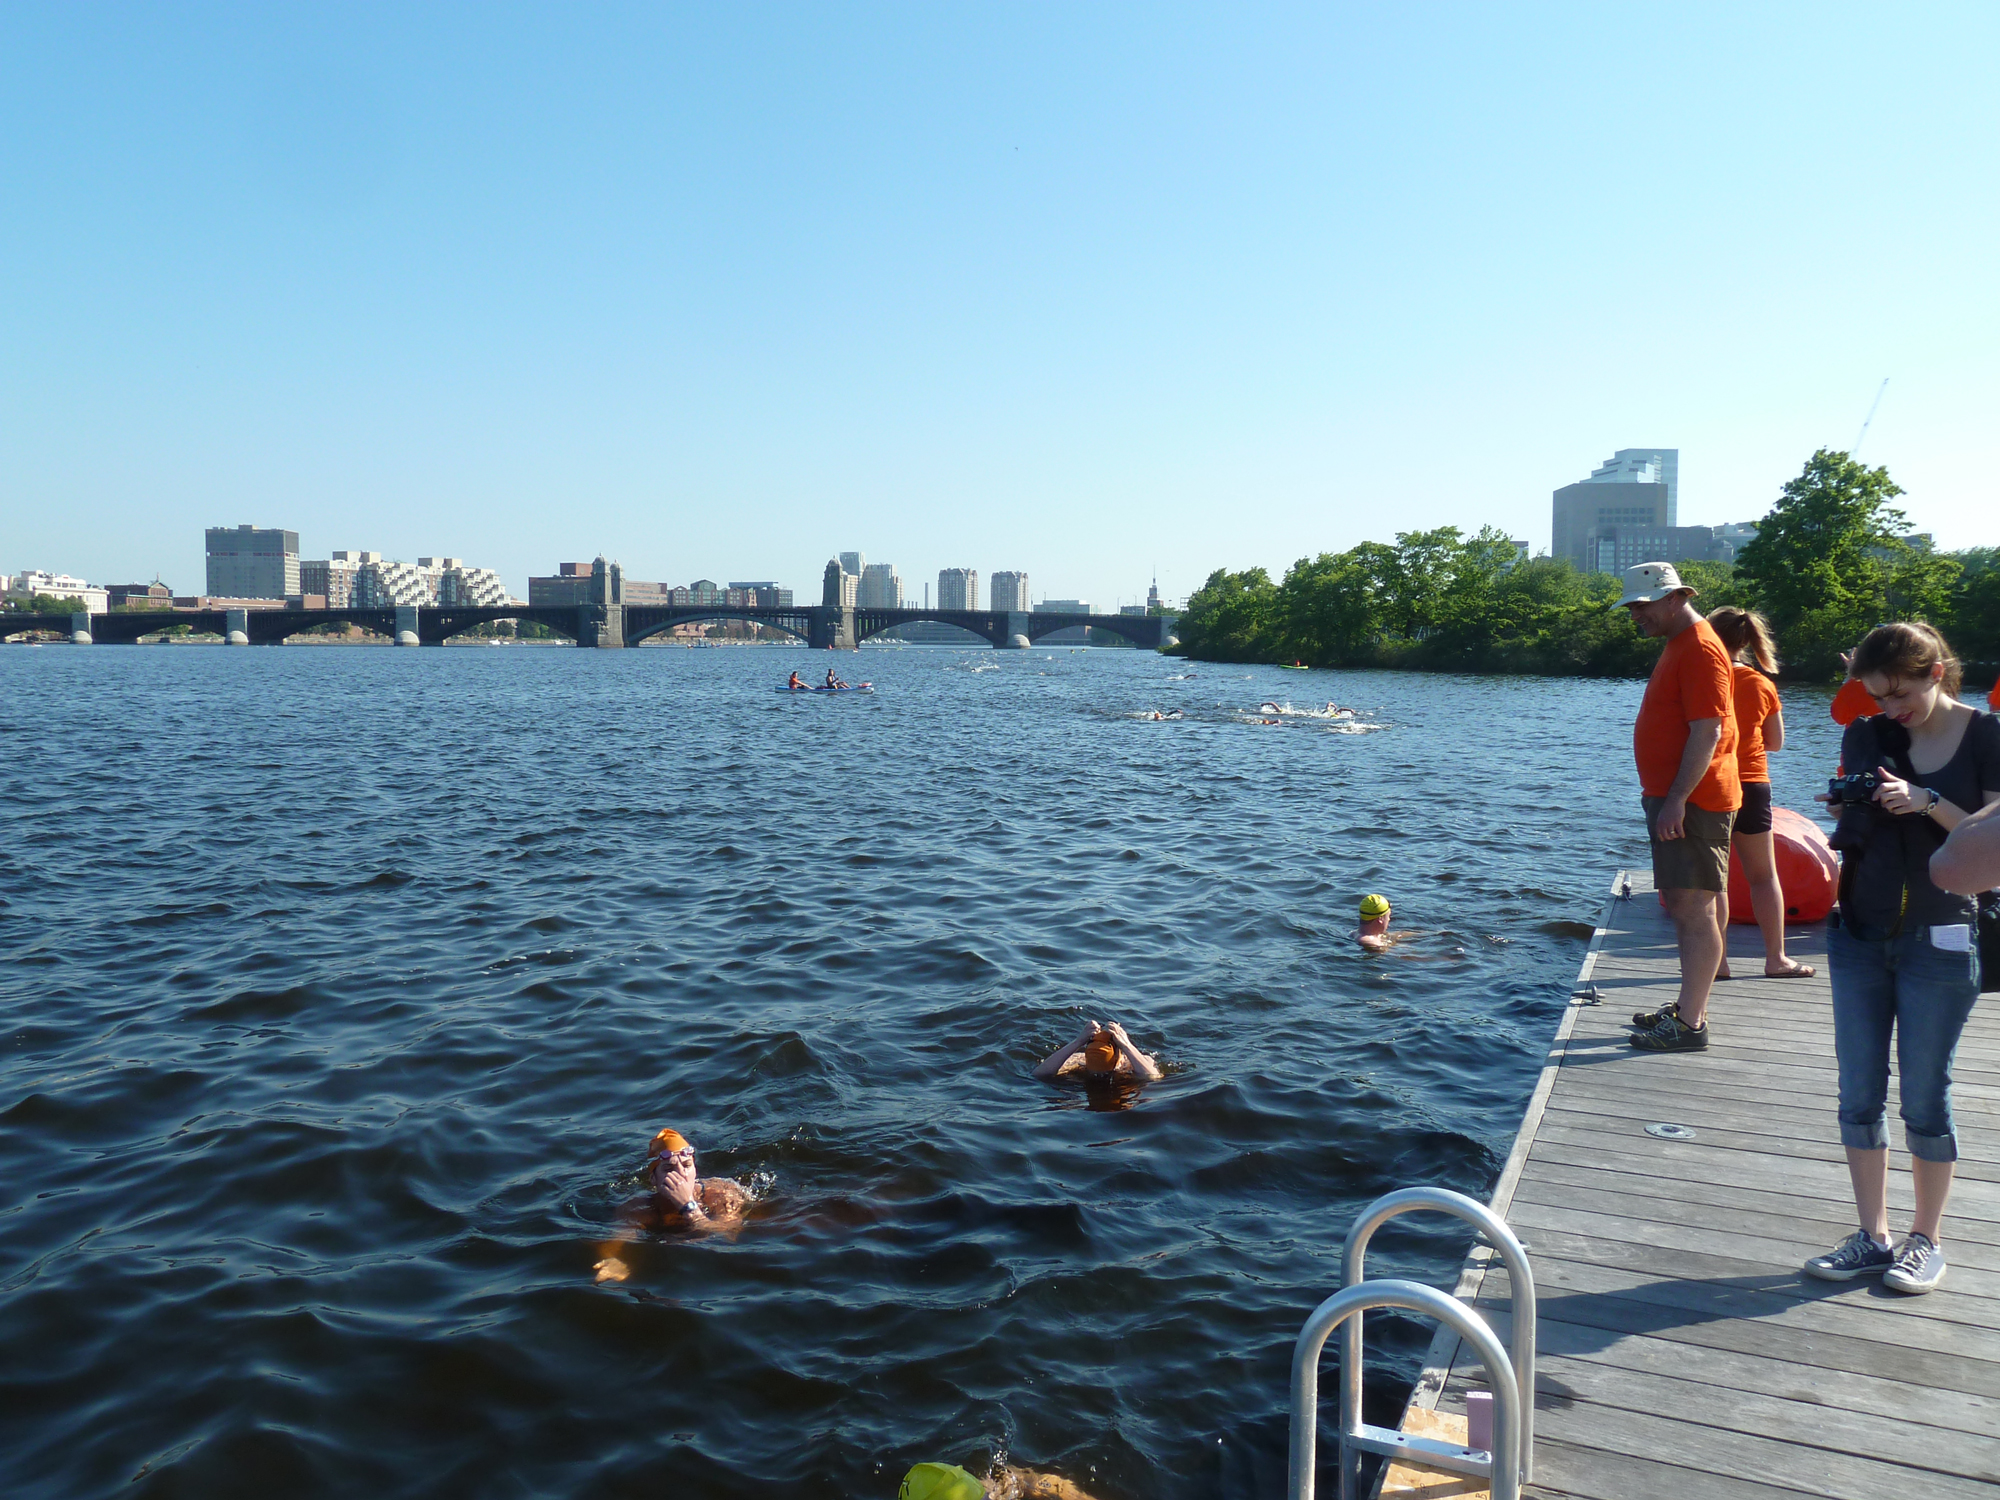 Living on Earth: Love That Dirty Water, Swimming in Boston's Charles